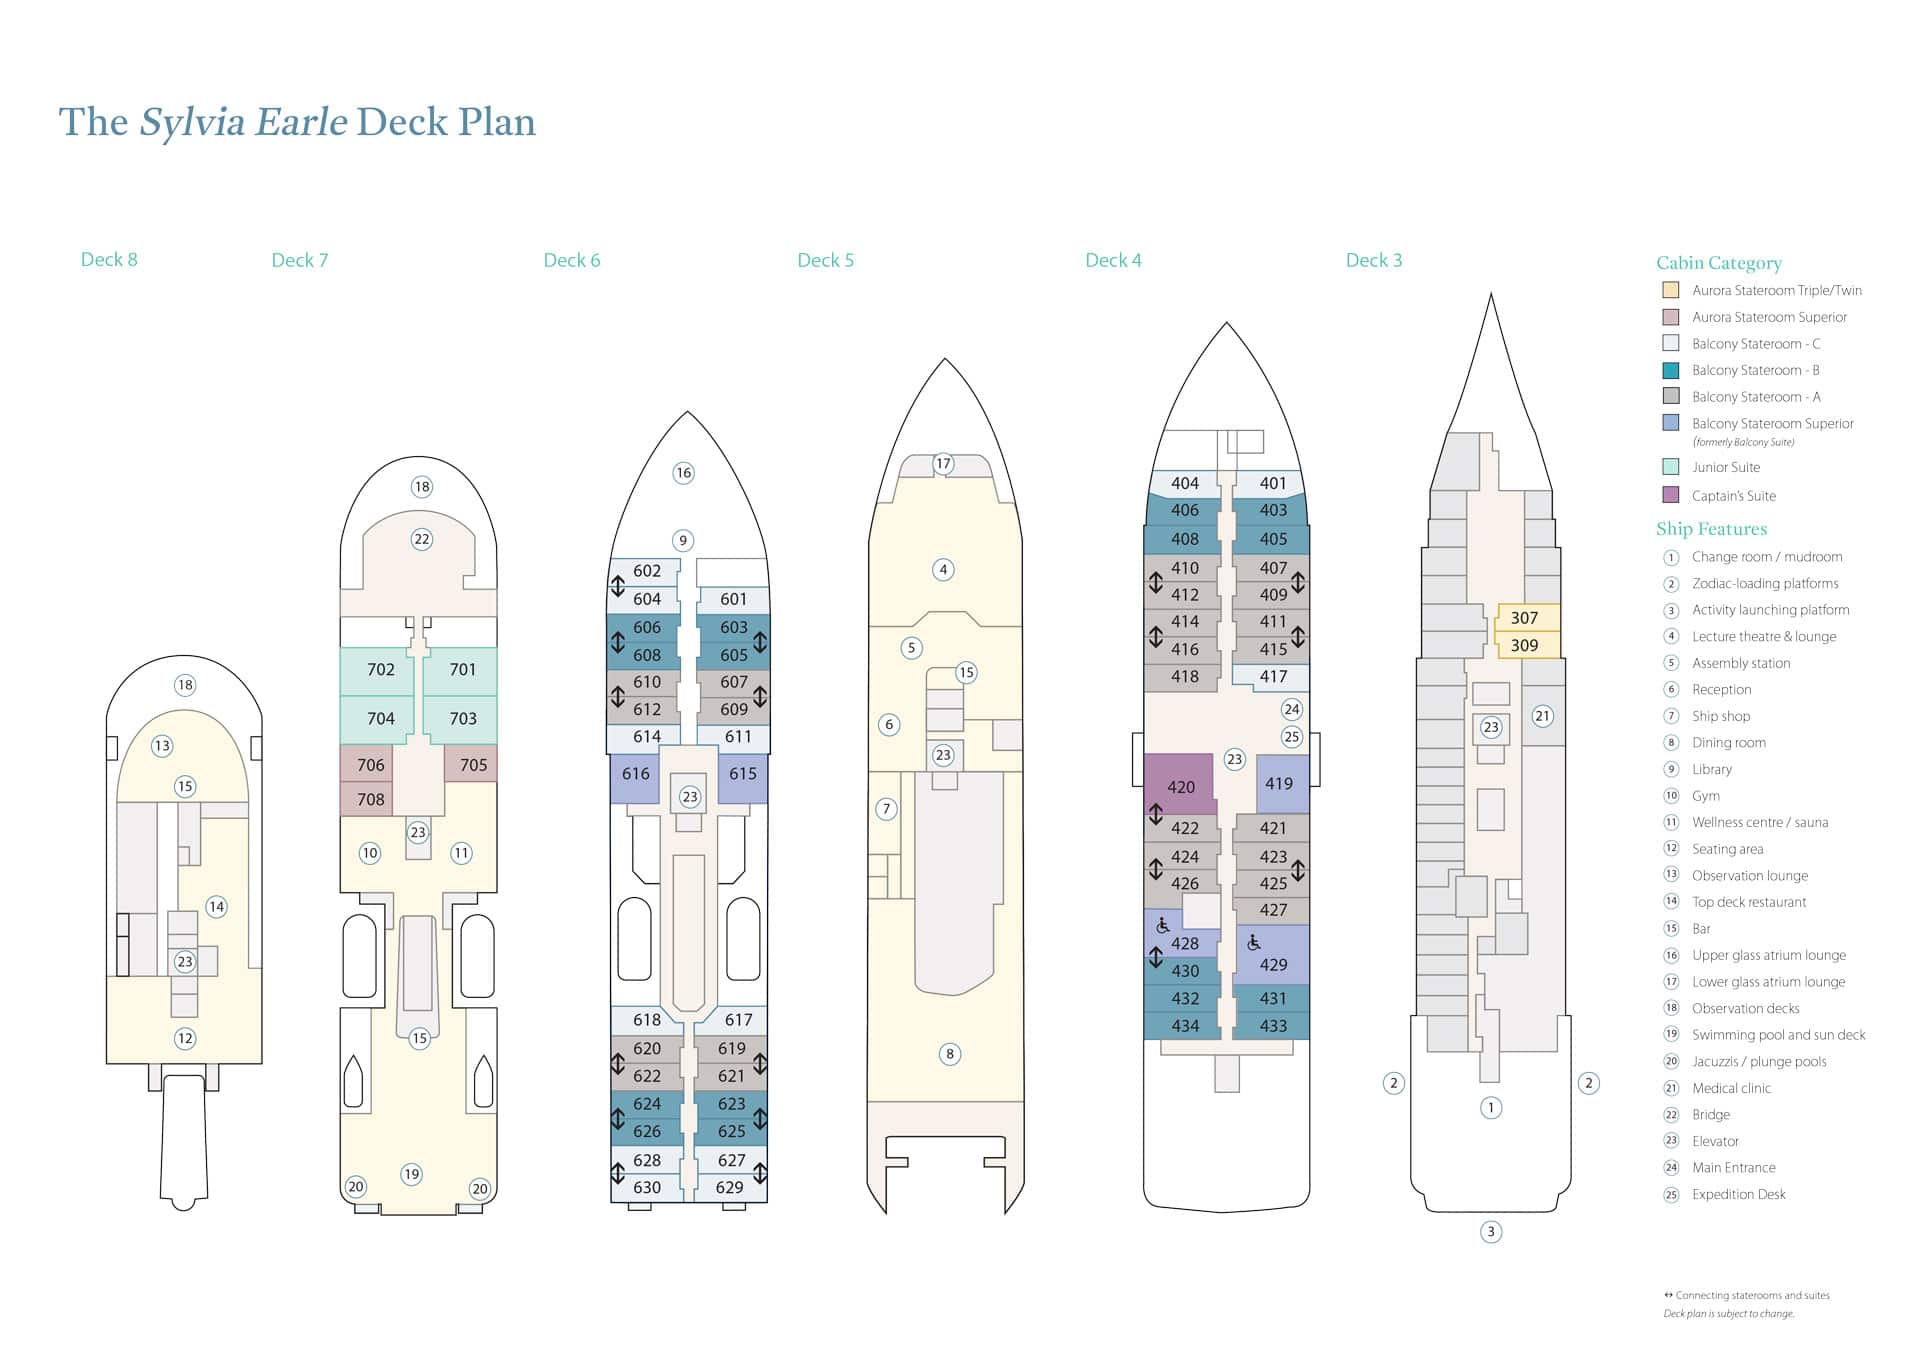 Deck plan of Sylvia Earle polar expedition ship, showing 77 cabins across Decks 3, 4, 6 & 7.